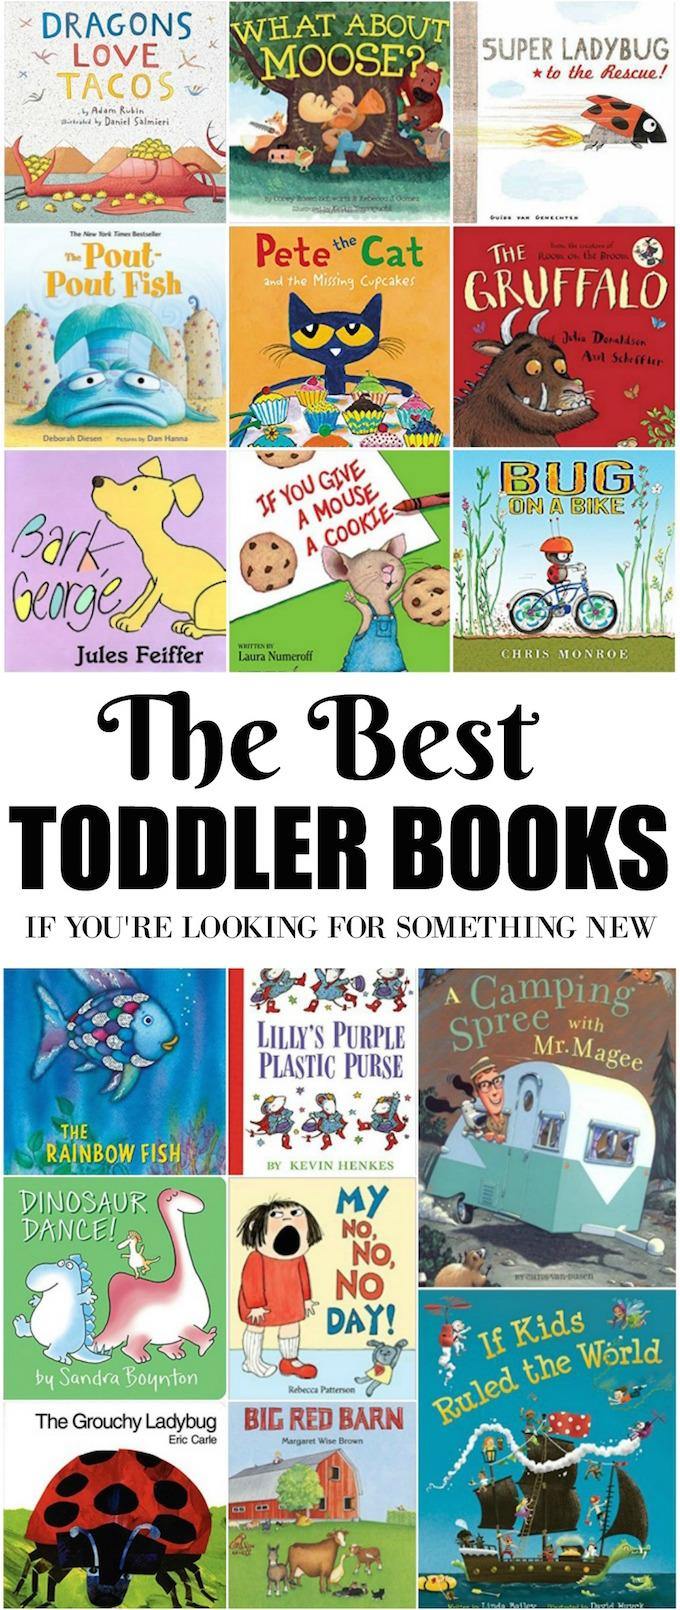 Some of the Best Toddler Books that might not have won any awards. Grab a few from the library or bookstore and enjoy them with your kids over and over again!